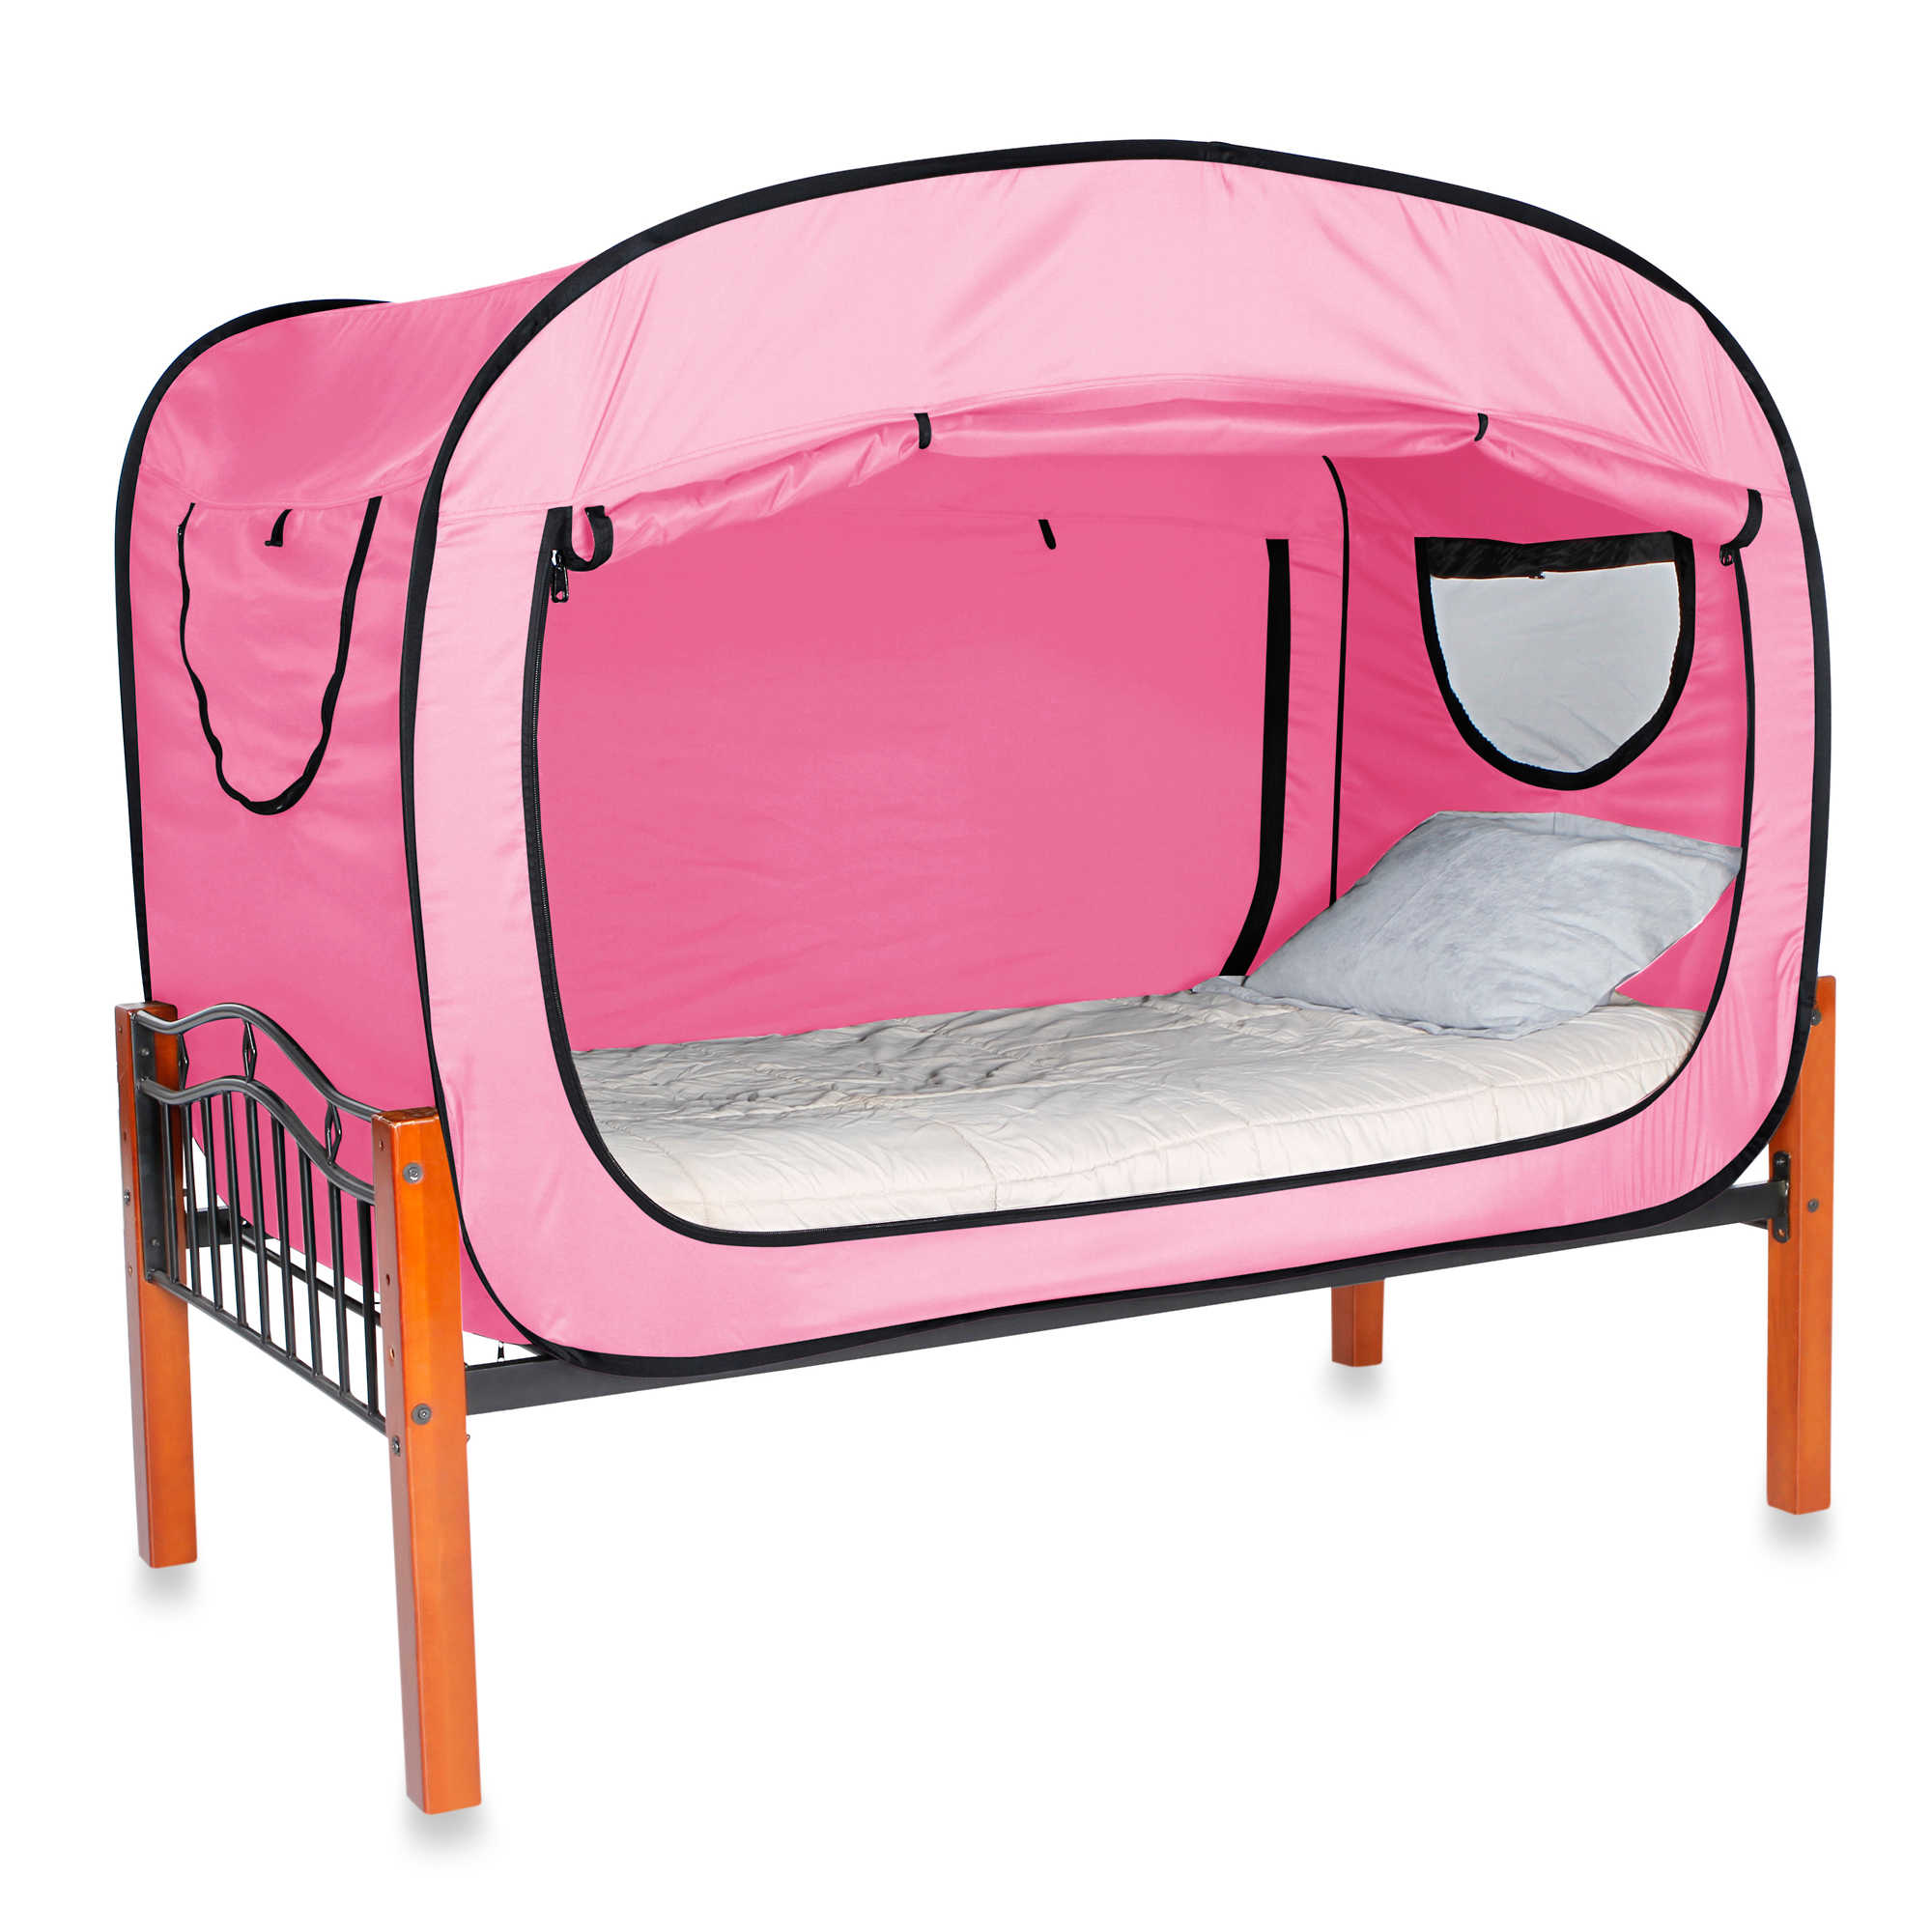 Alluring Twin Size Beds For S Bed Tent